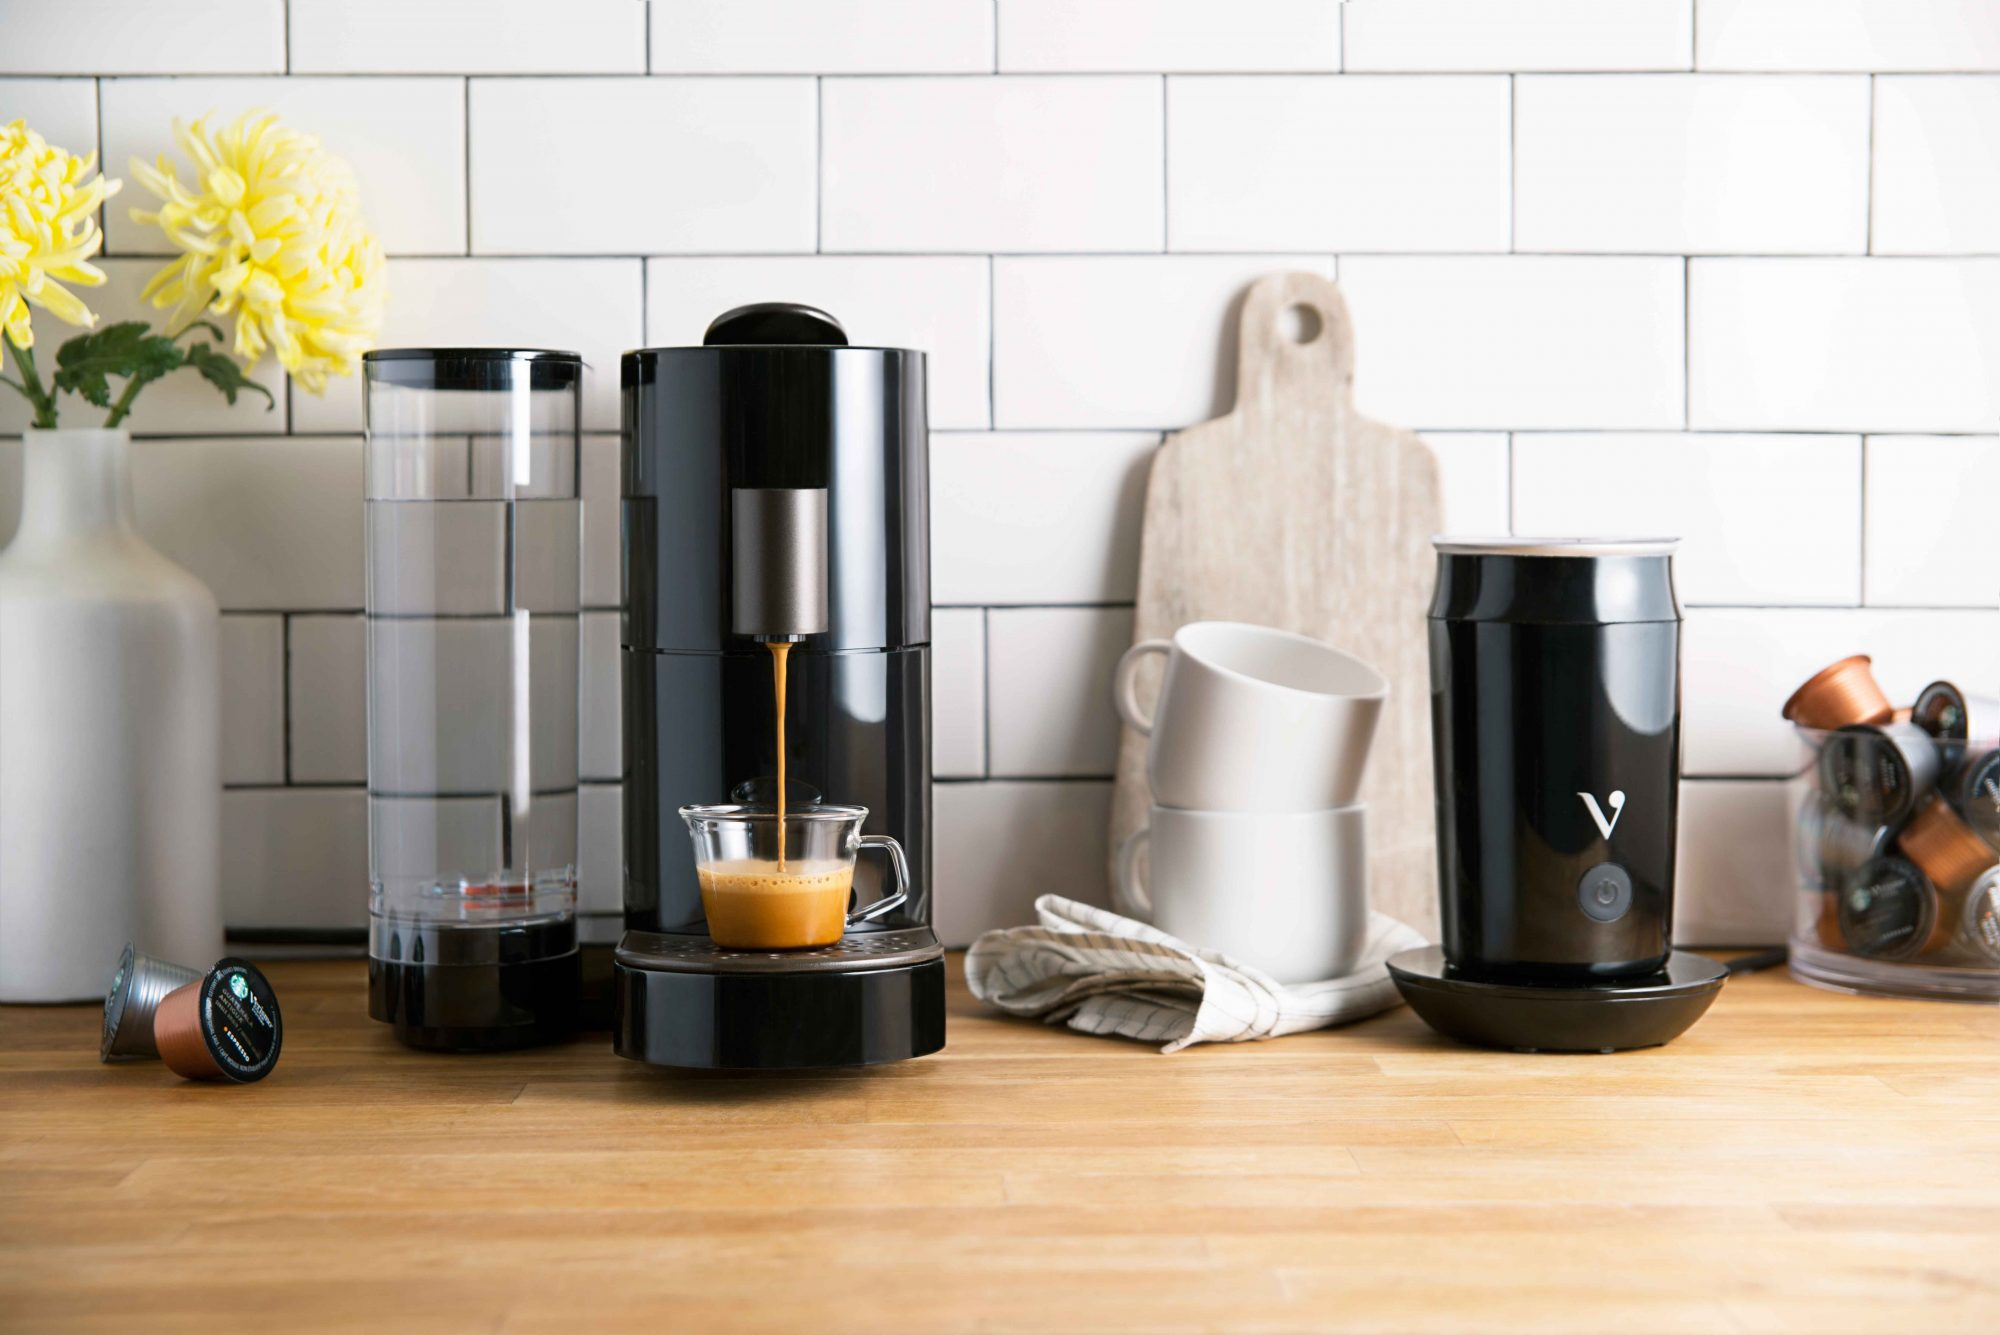 EC: Starbucks Steps Up Coffee Pod Game with New Verismo V Brewing System